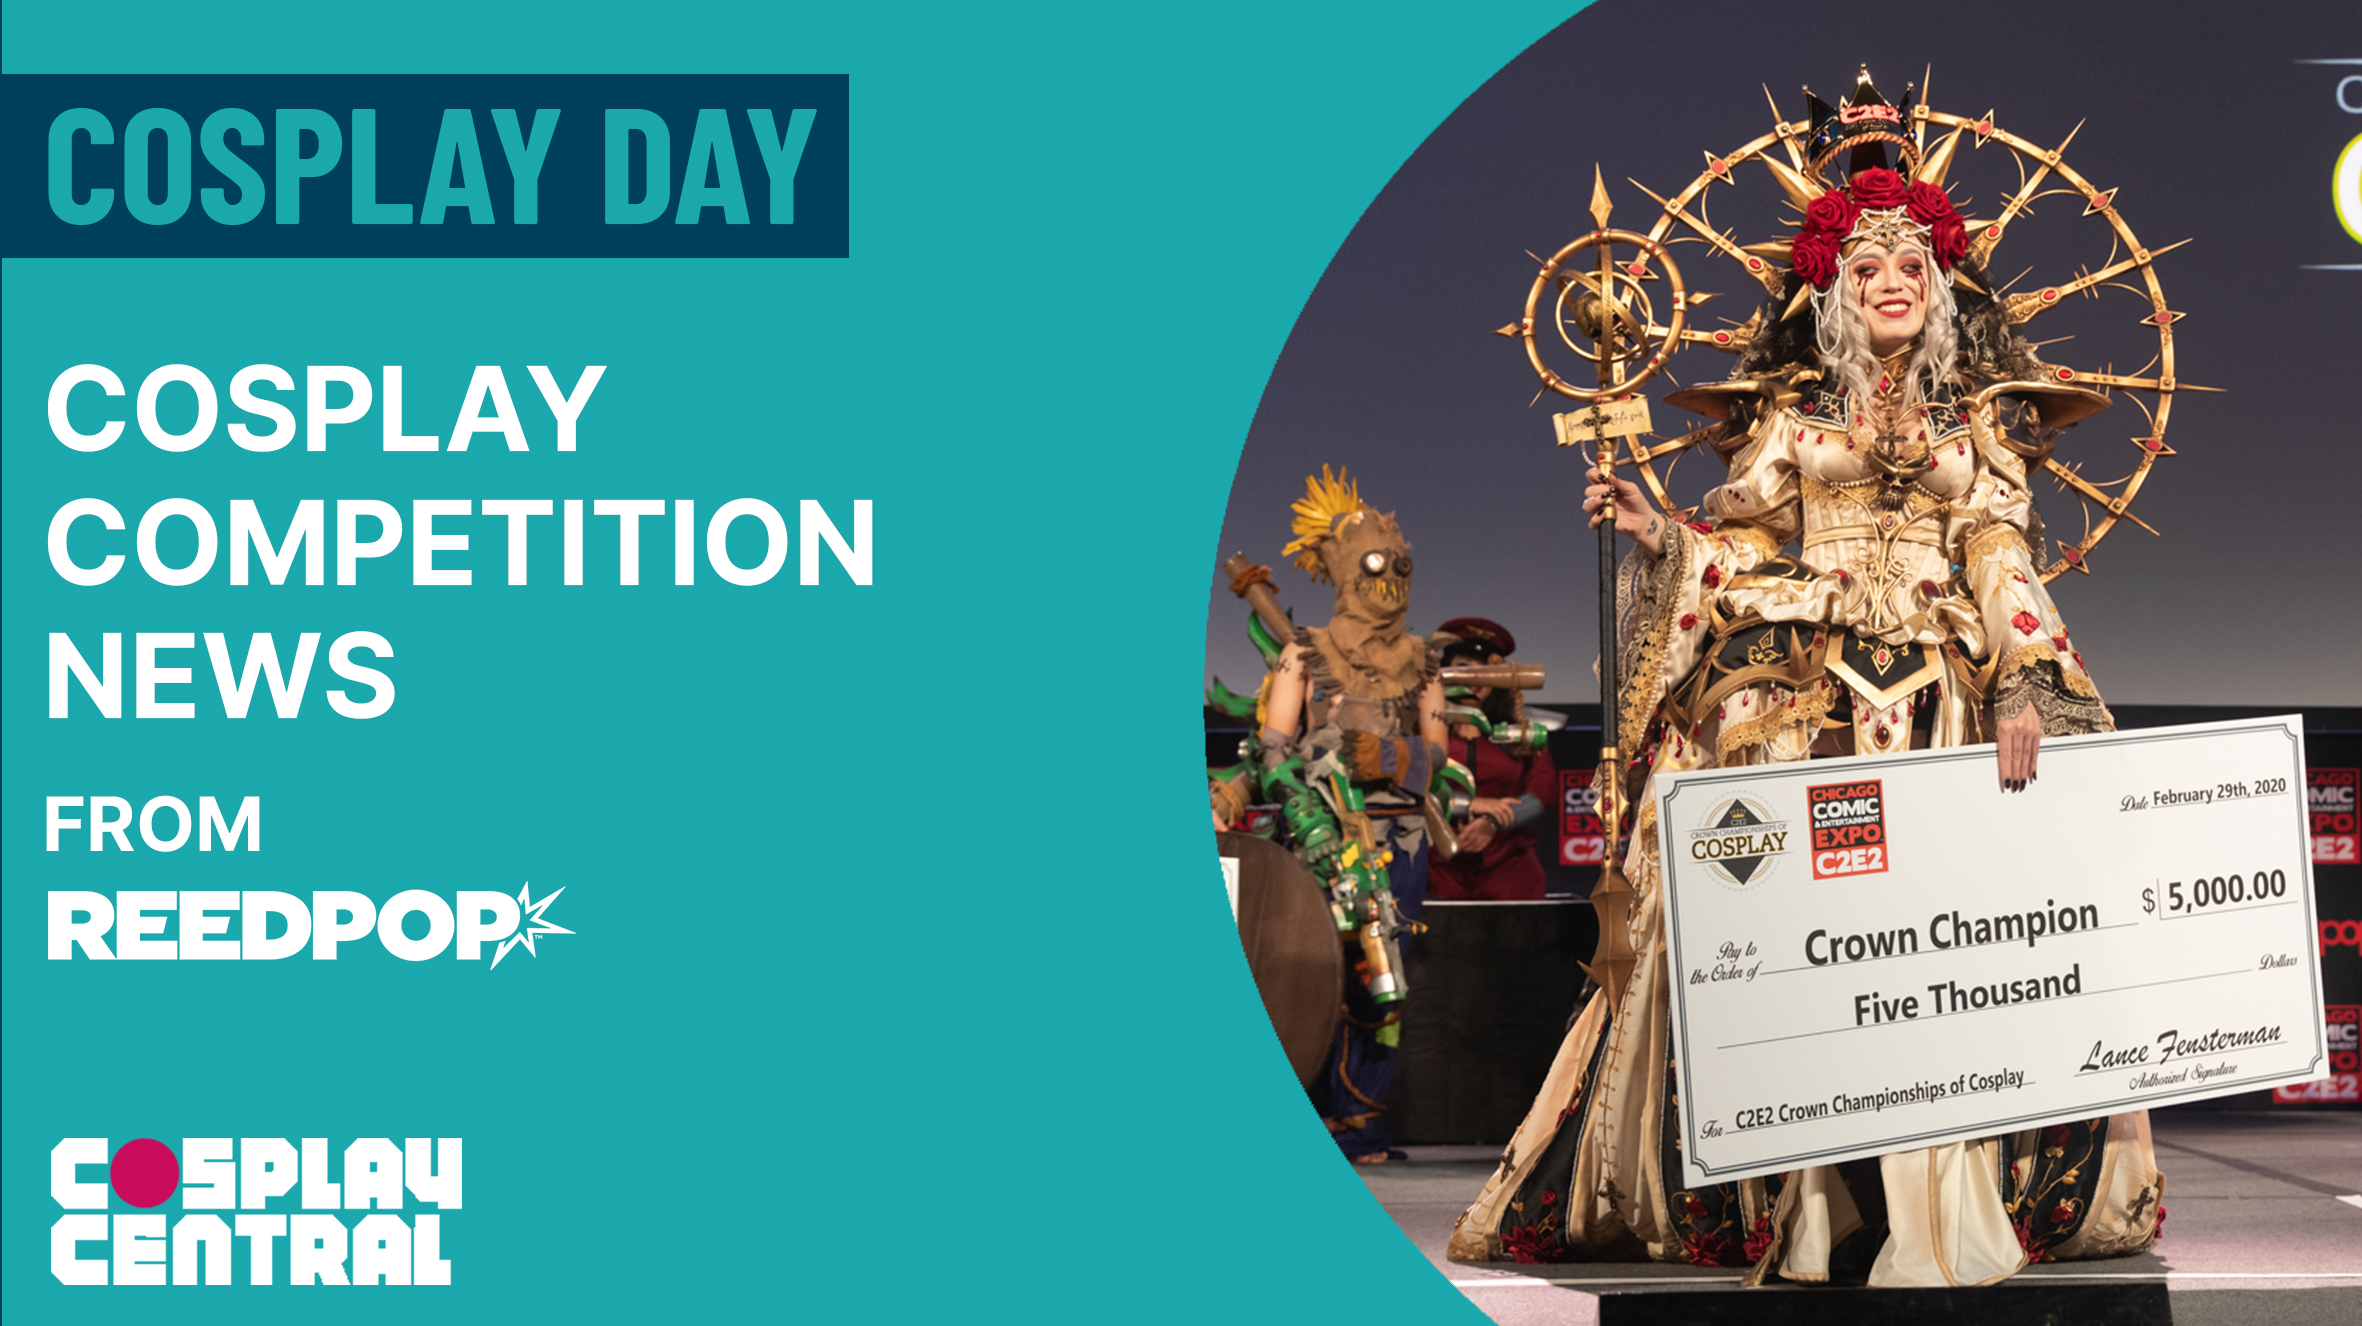 Image for Cosplay Competition News from ReedPop - Cosplay Day 2021